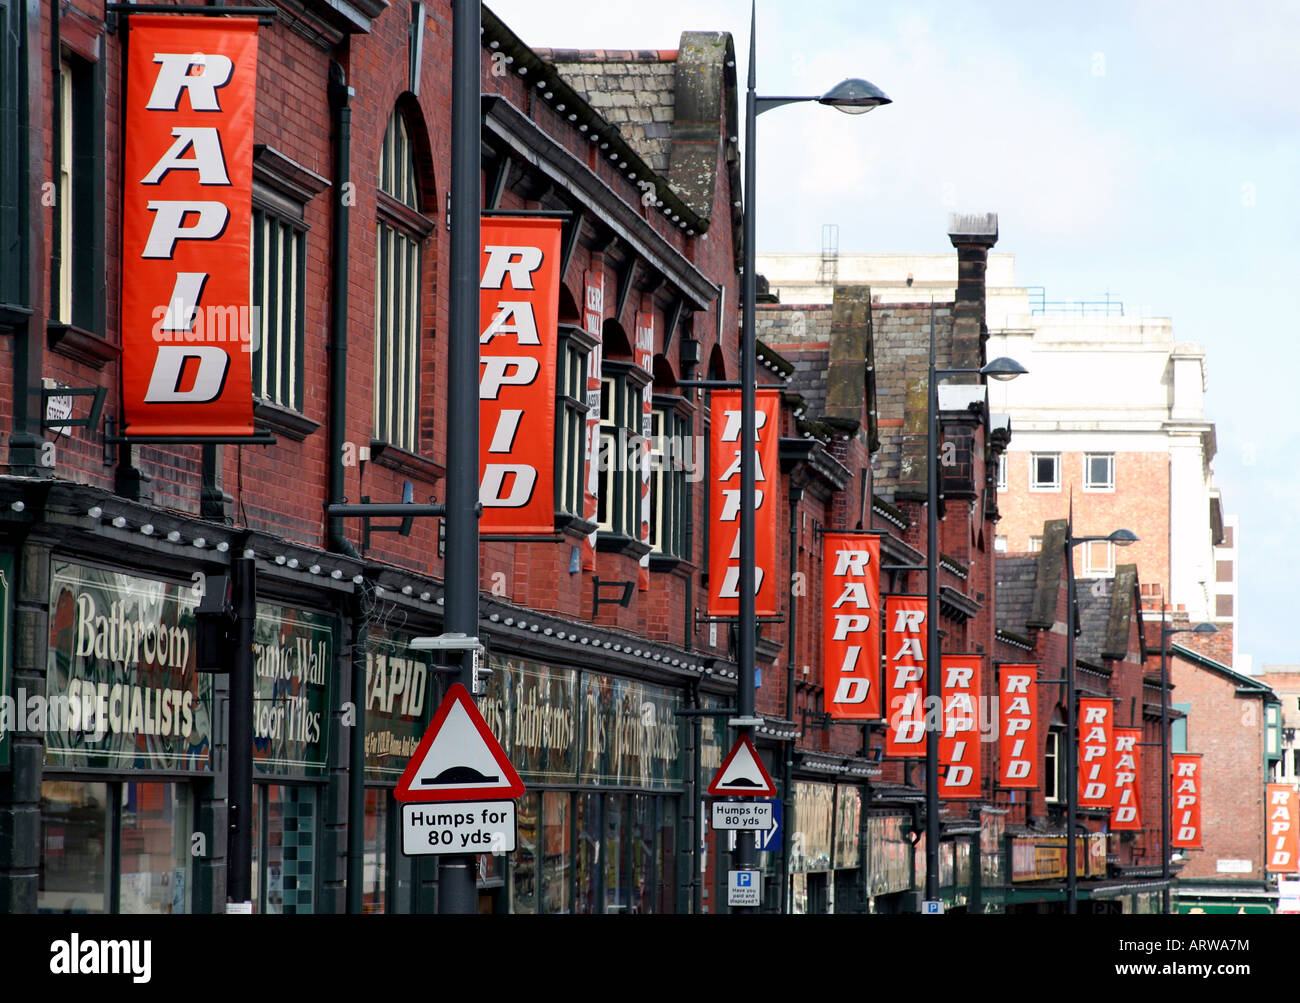 Entire street in centre of Liverpool has gradually been taken over by hardware store Rapid which now occupies all - Stock Image